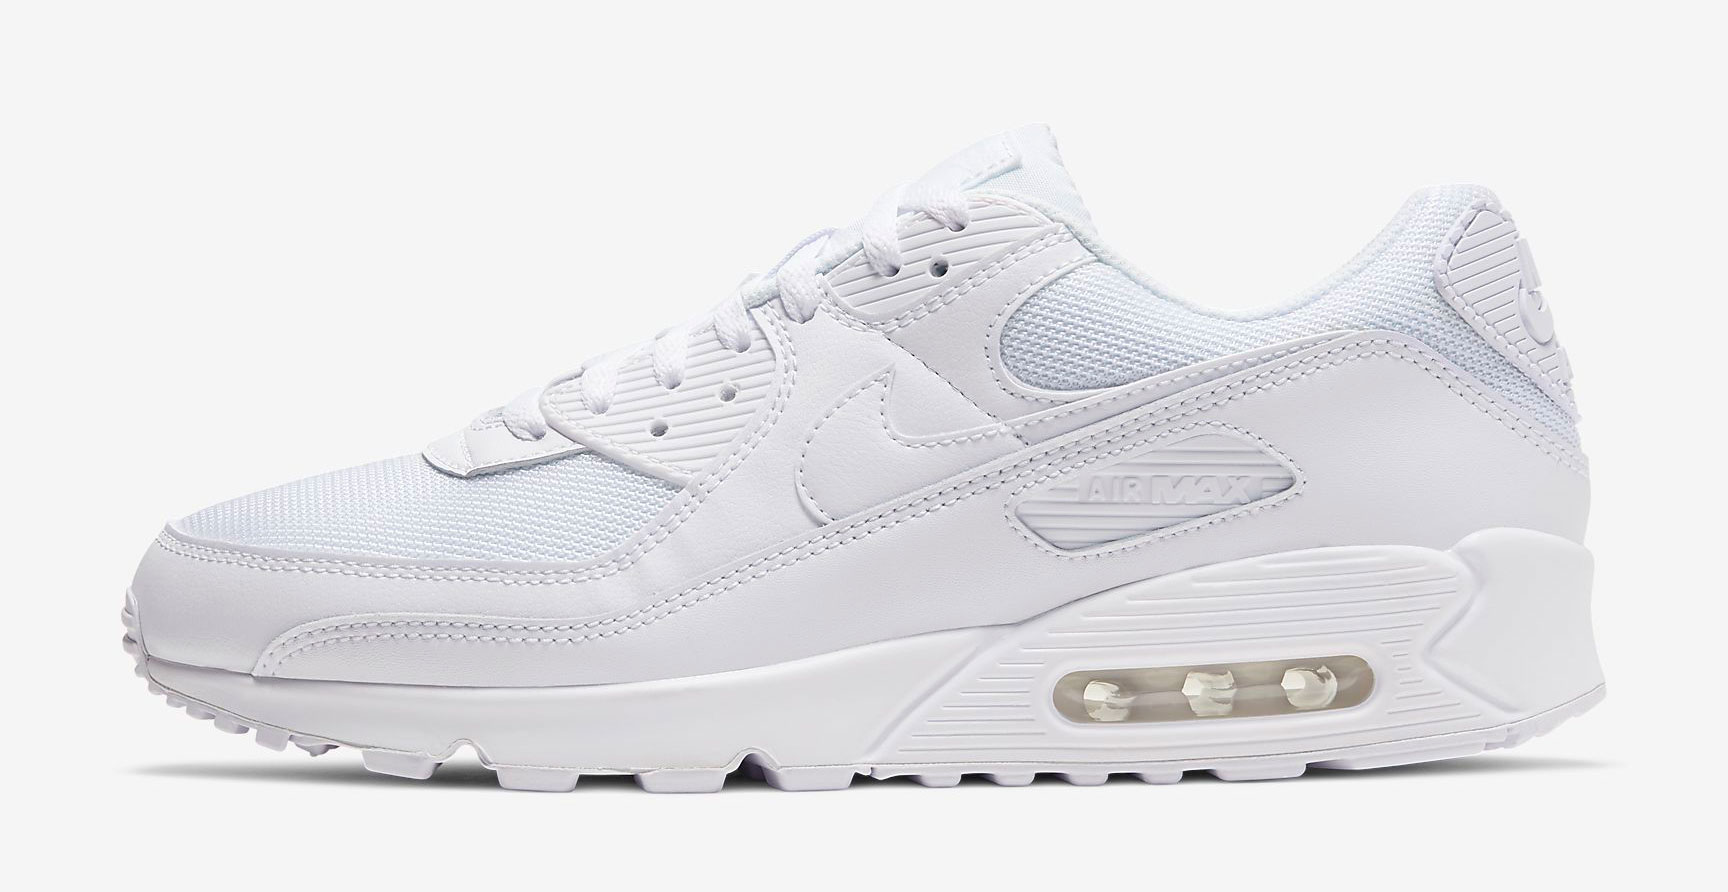 nike-air-max-90-triple-white-2020-release-date